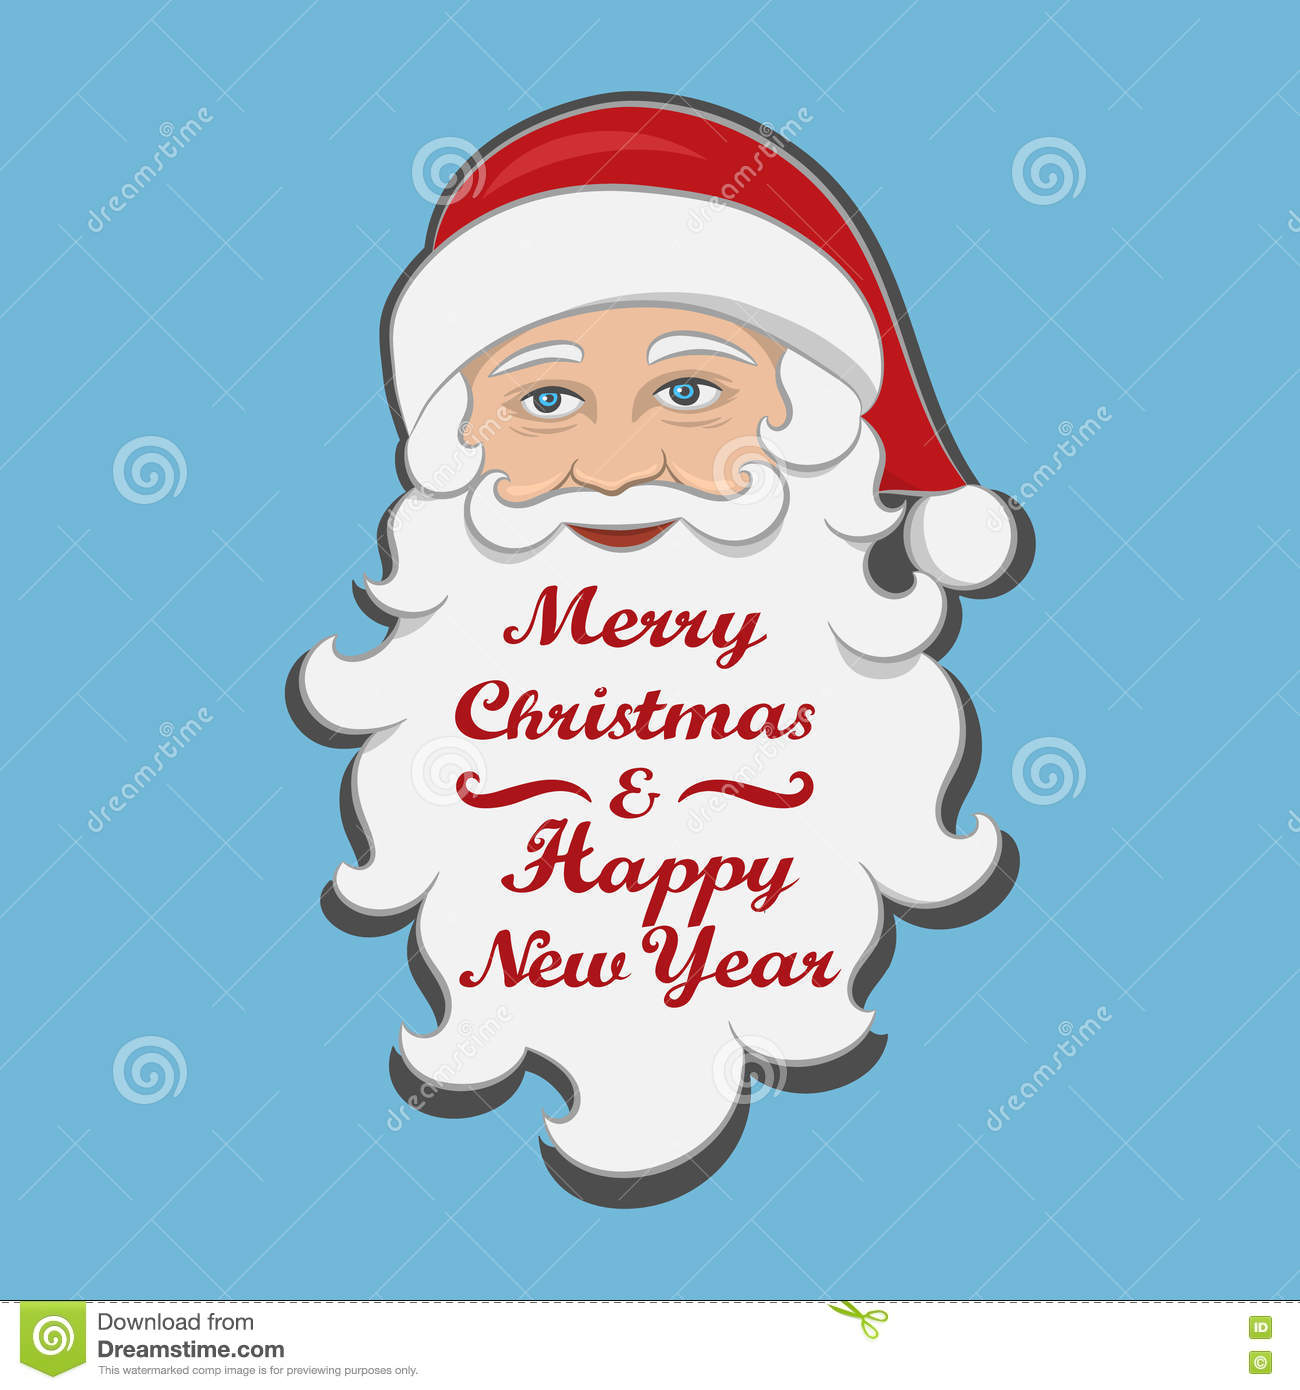 Santa Claus Isolated. Merry Christmas And Happy New Year.